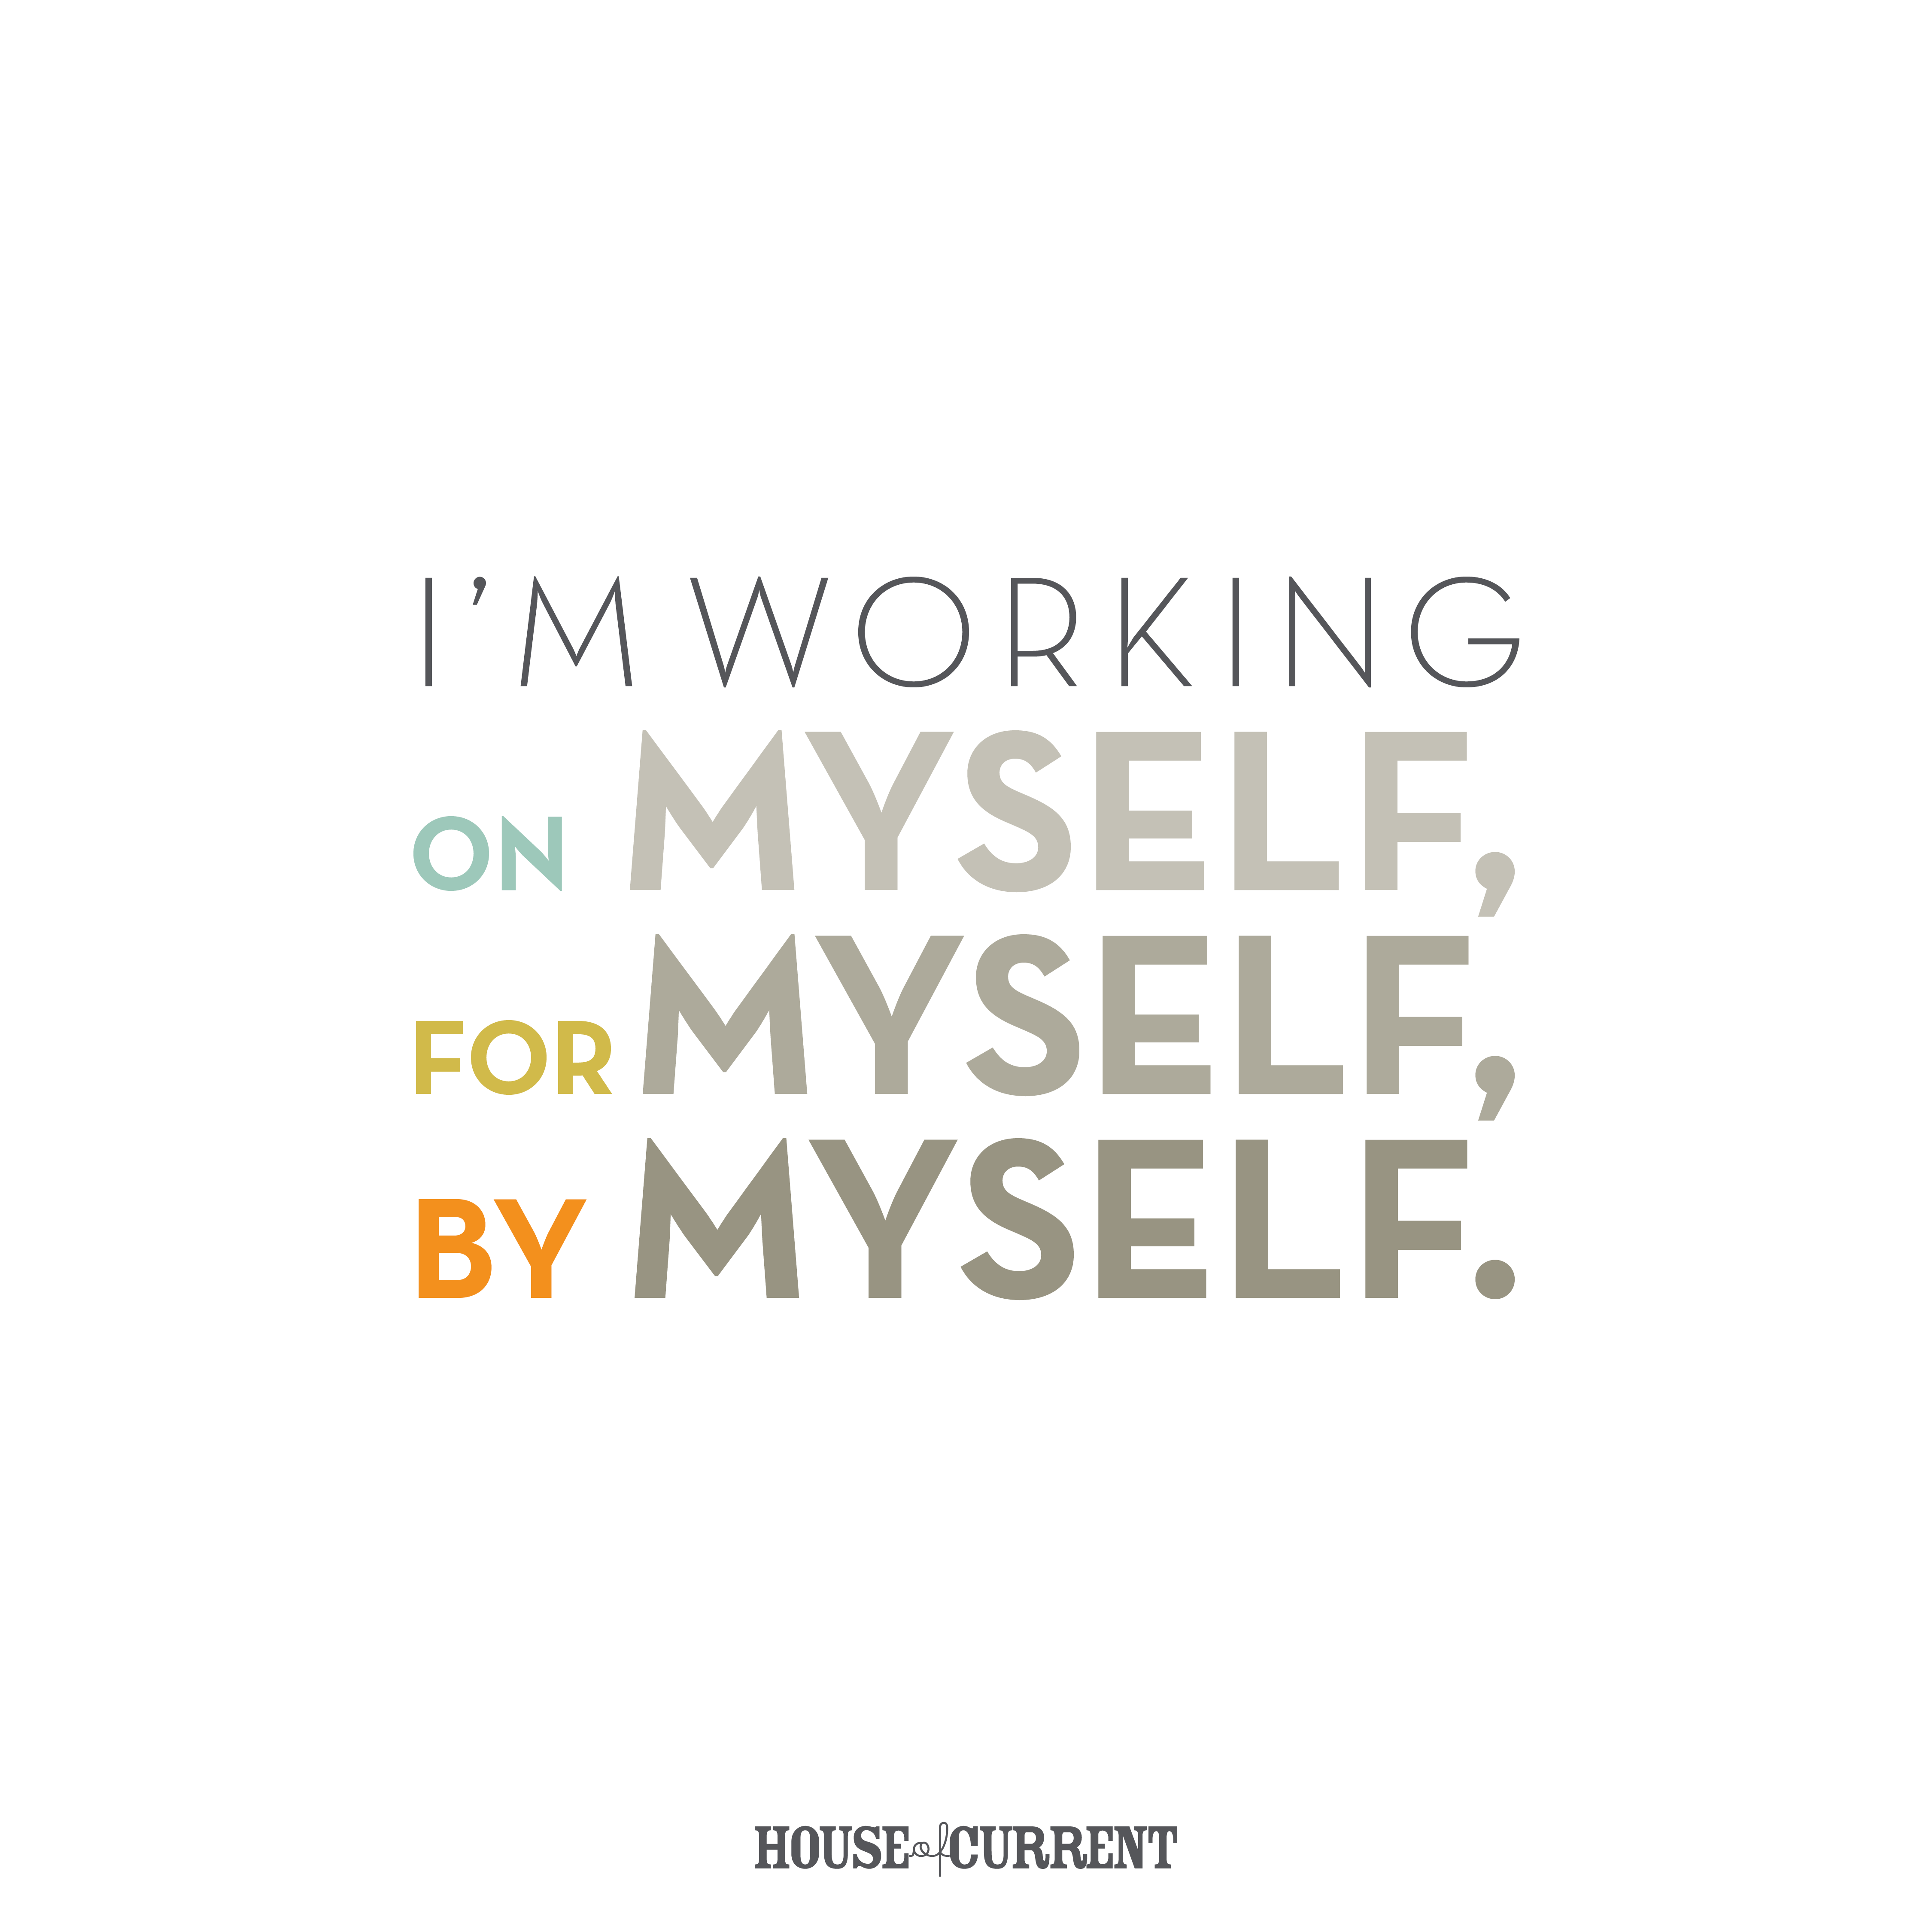 IM Working On Myself For Myself By Myself  Motivational Quote